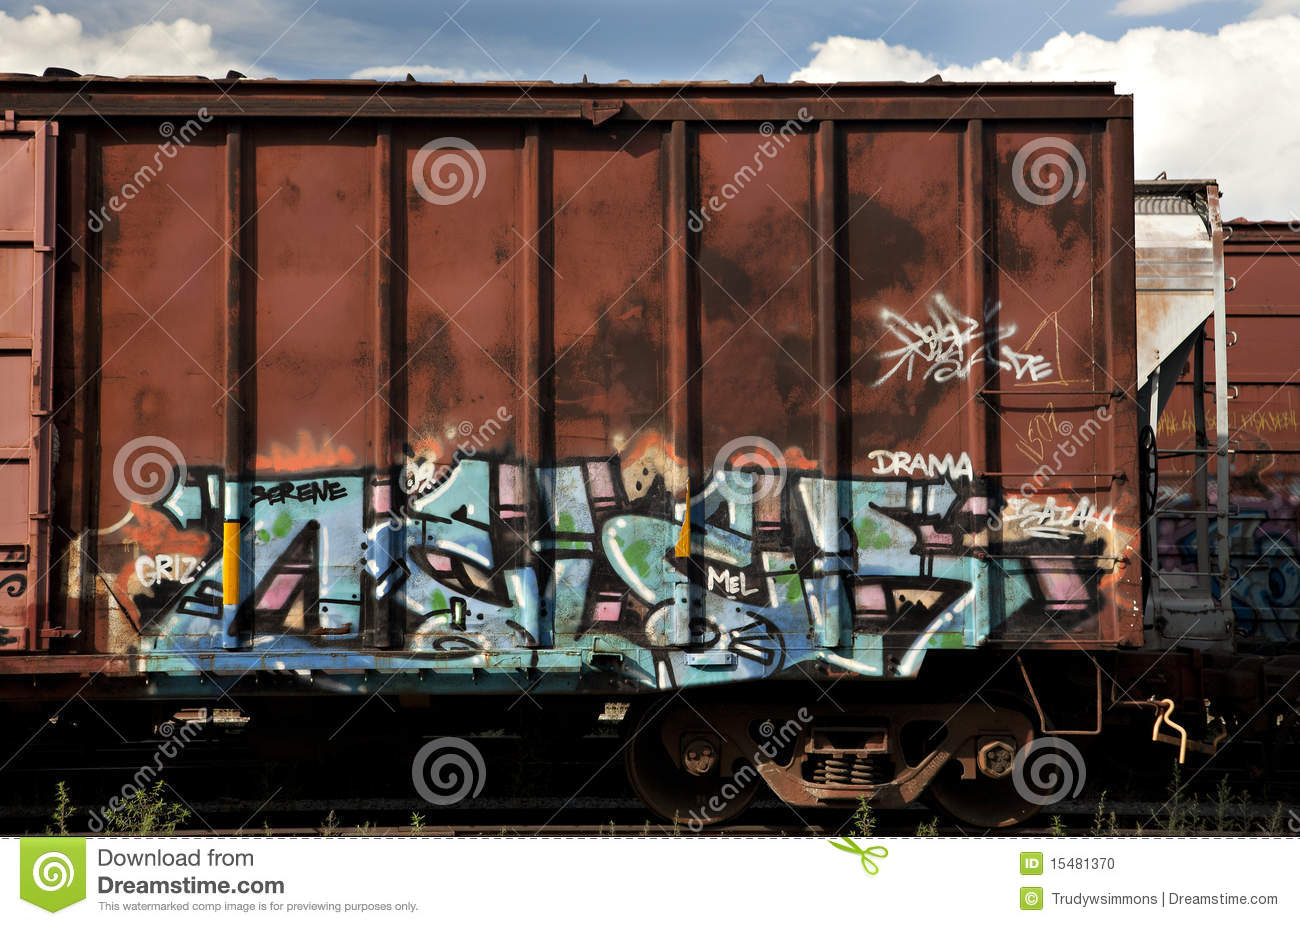 Box Cars From A Freight Train With Graffiti Stock Photo Image Of